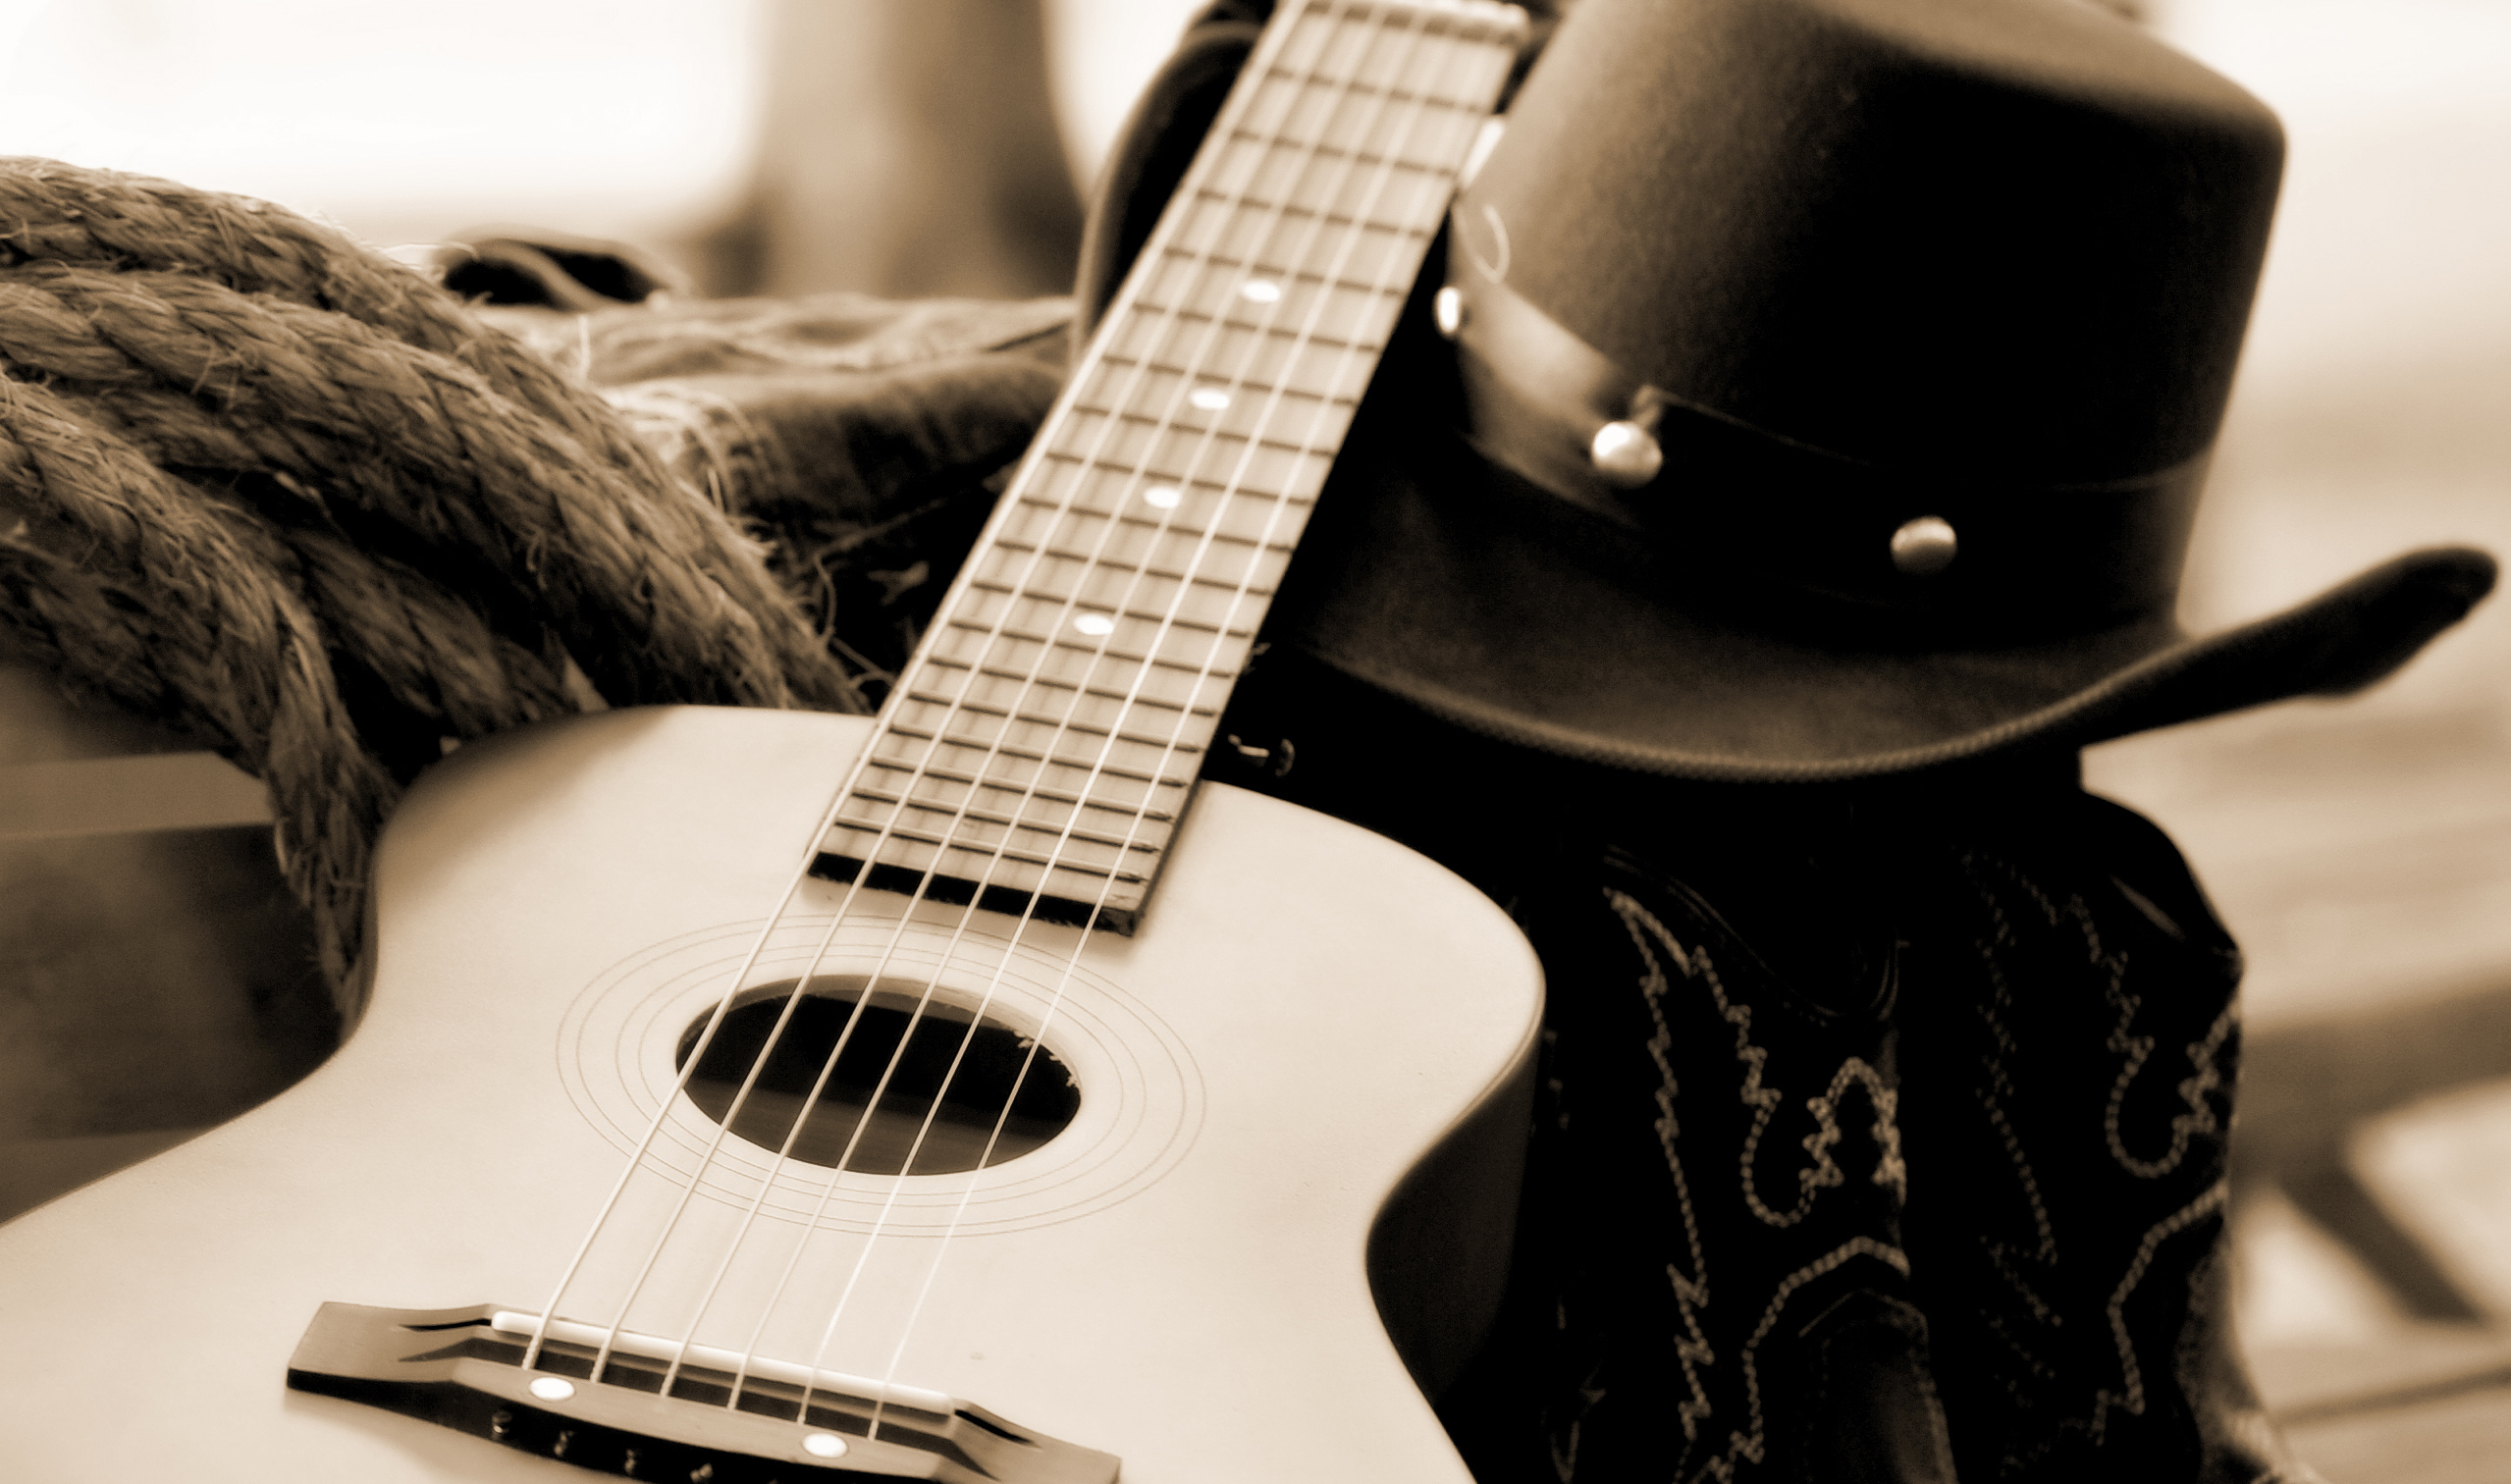 to wear - Boots cowboy and hat and guitar photo video